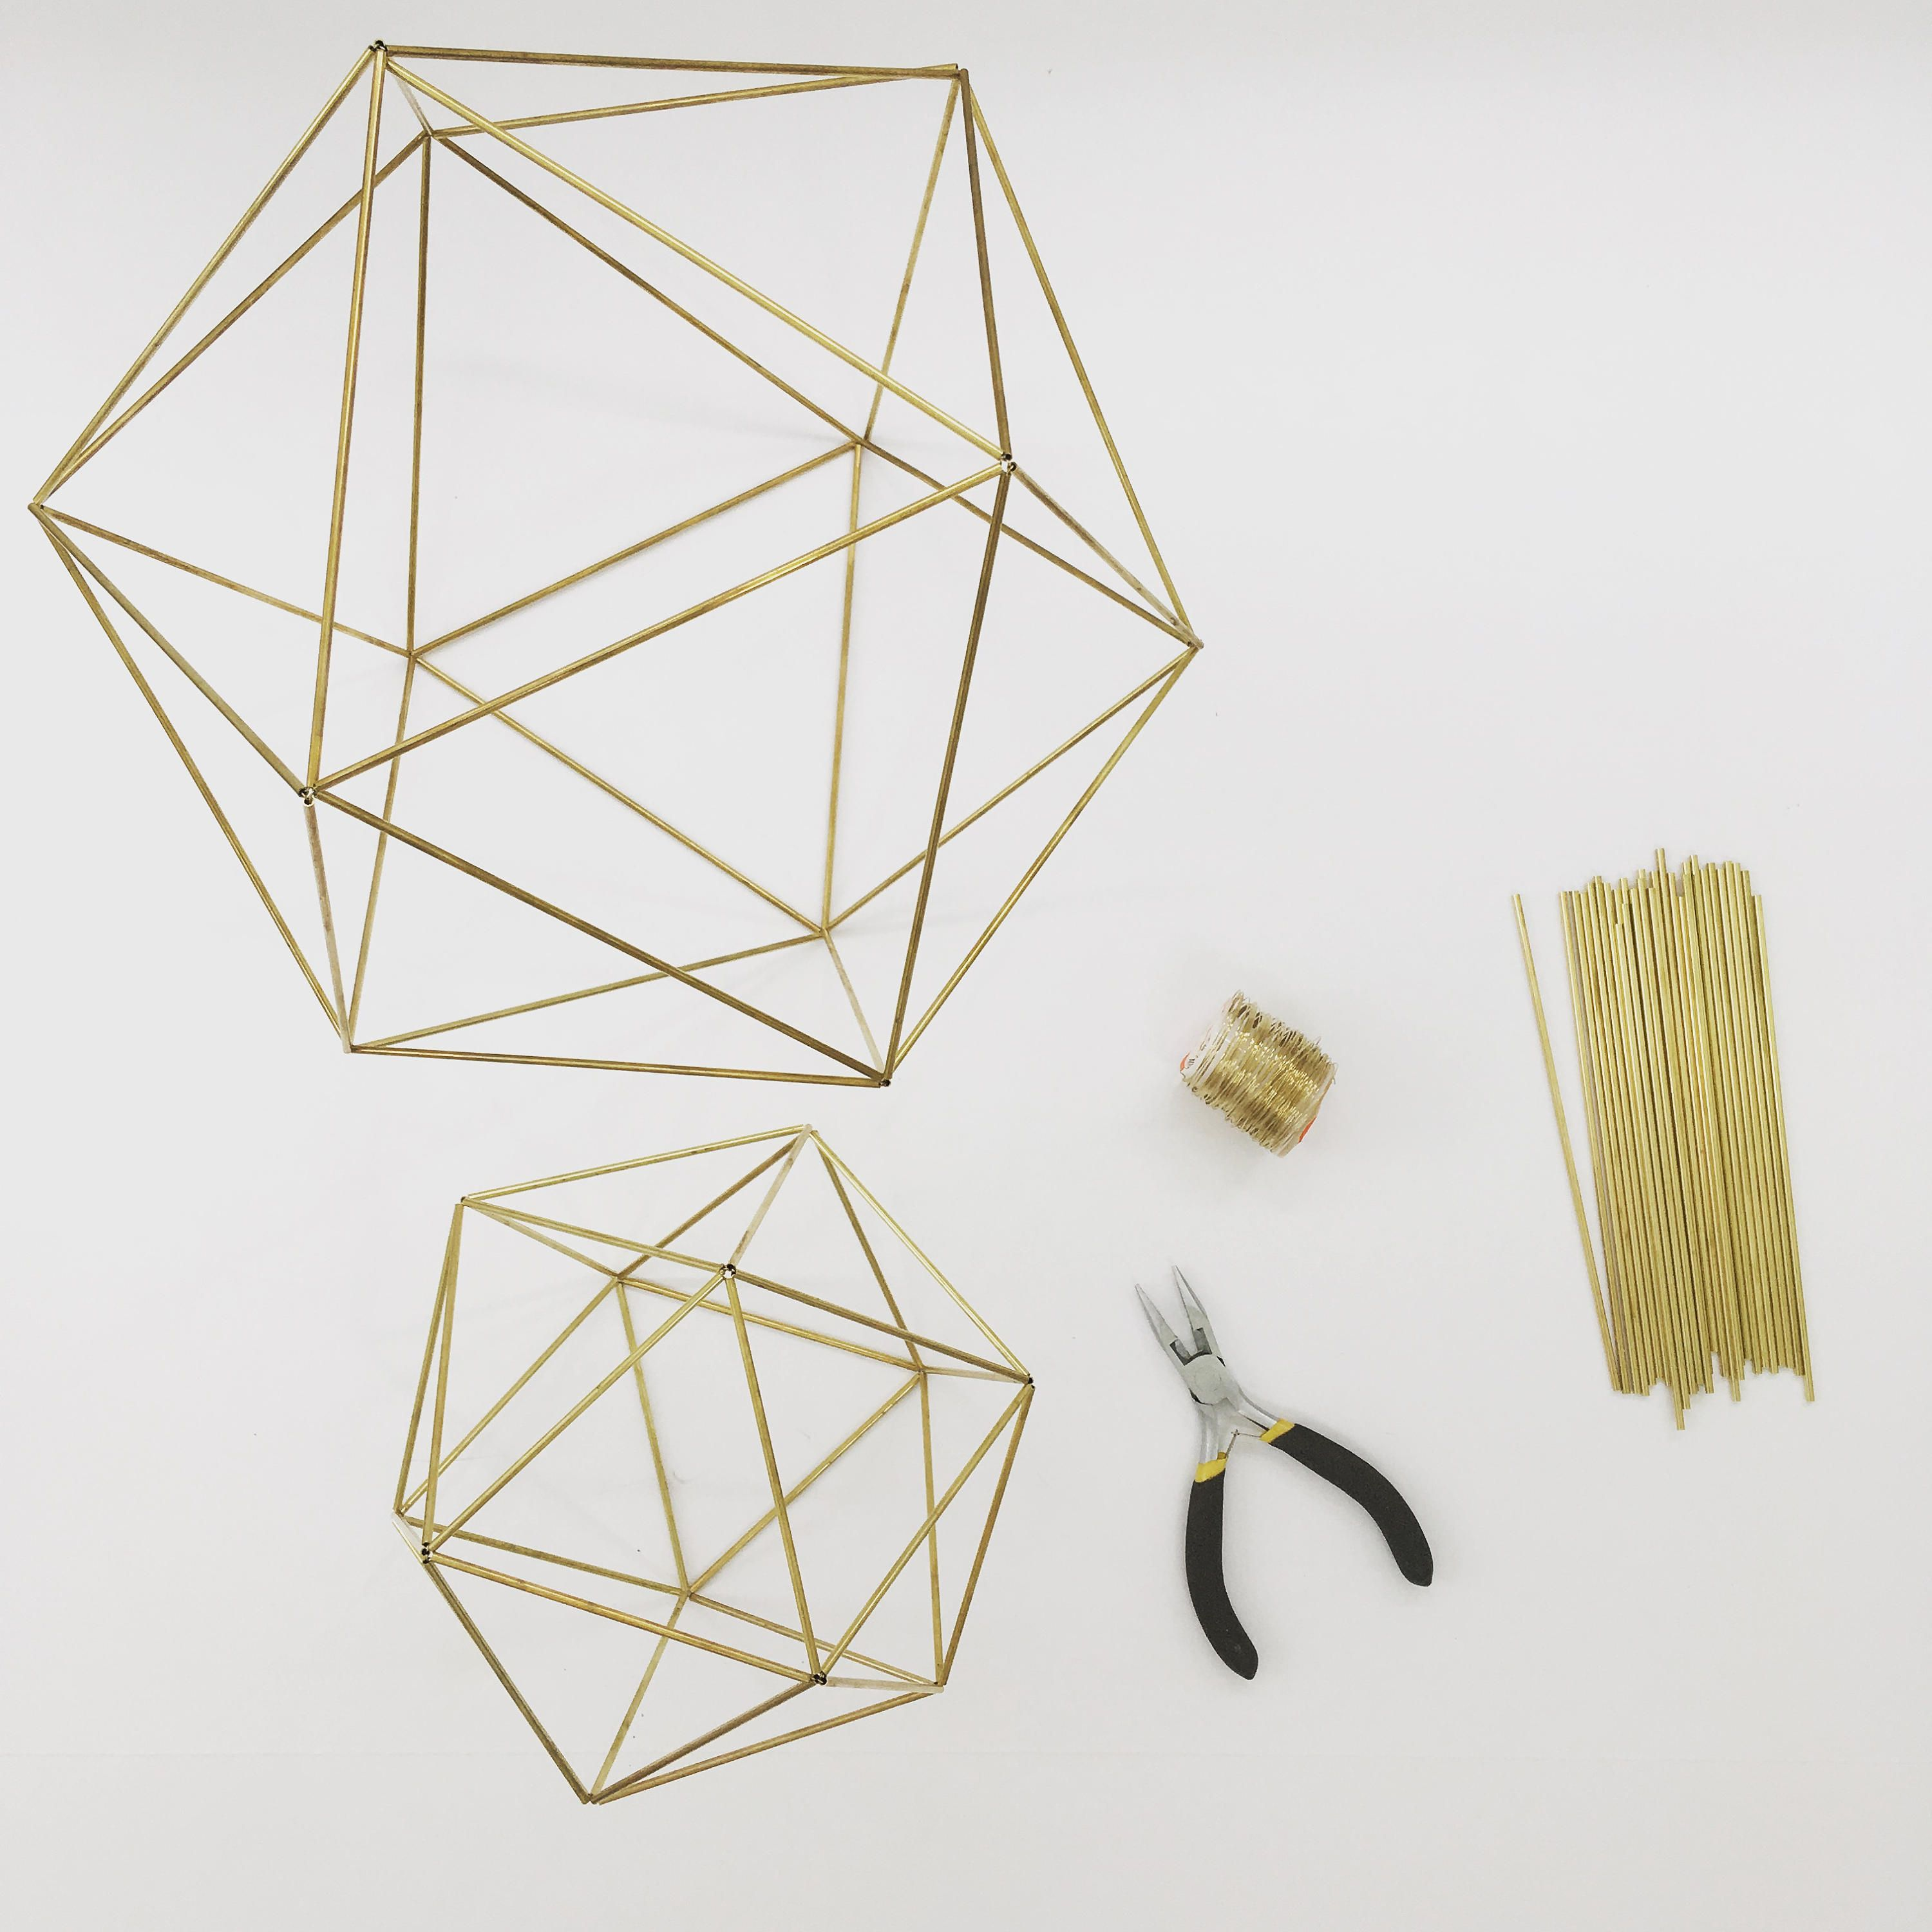 If you like the Geometric Himmeli idea for your centerpieces but ...